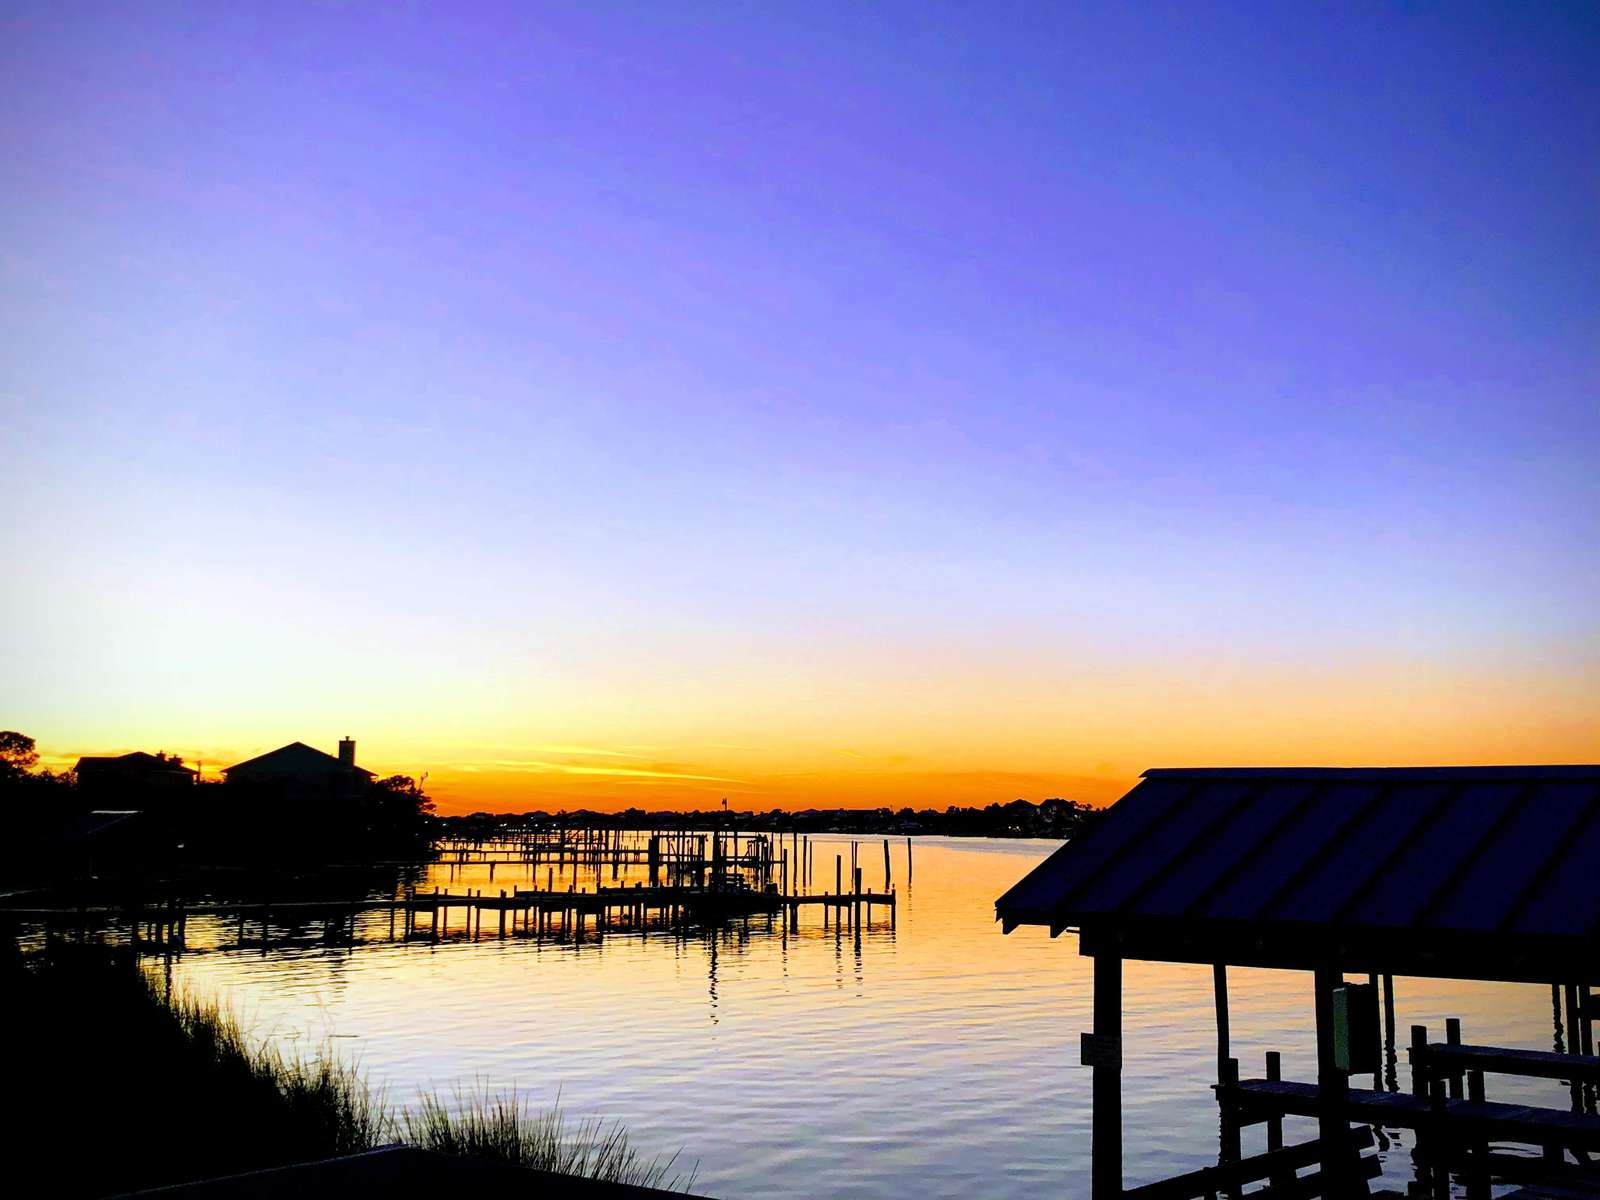 Enjoy beautiful sunsets from your private balcony! - property